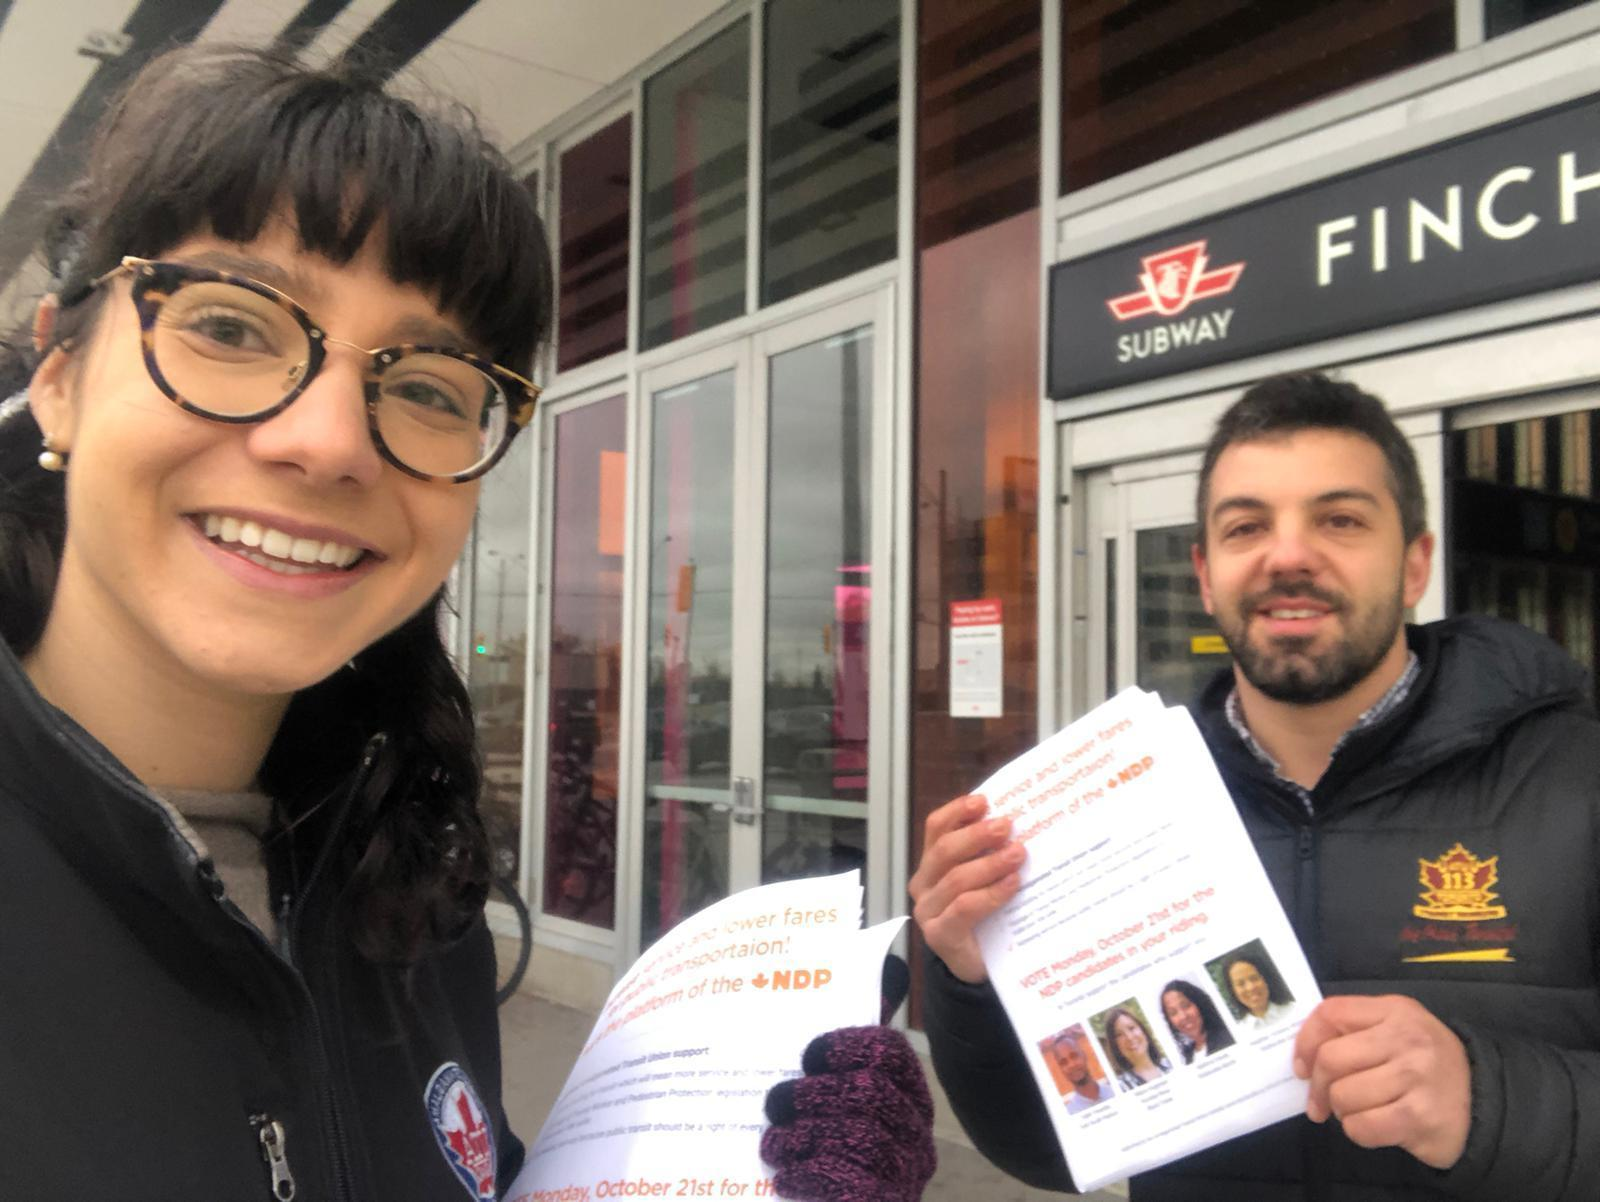 Elxn43 Day of Action